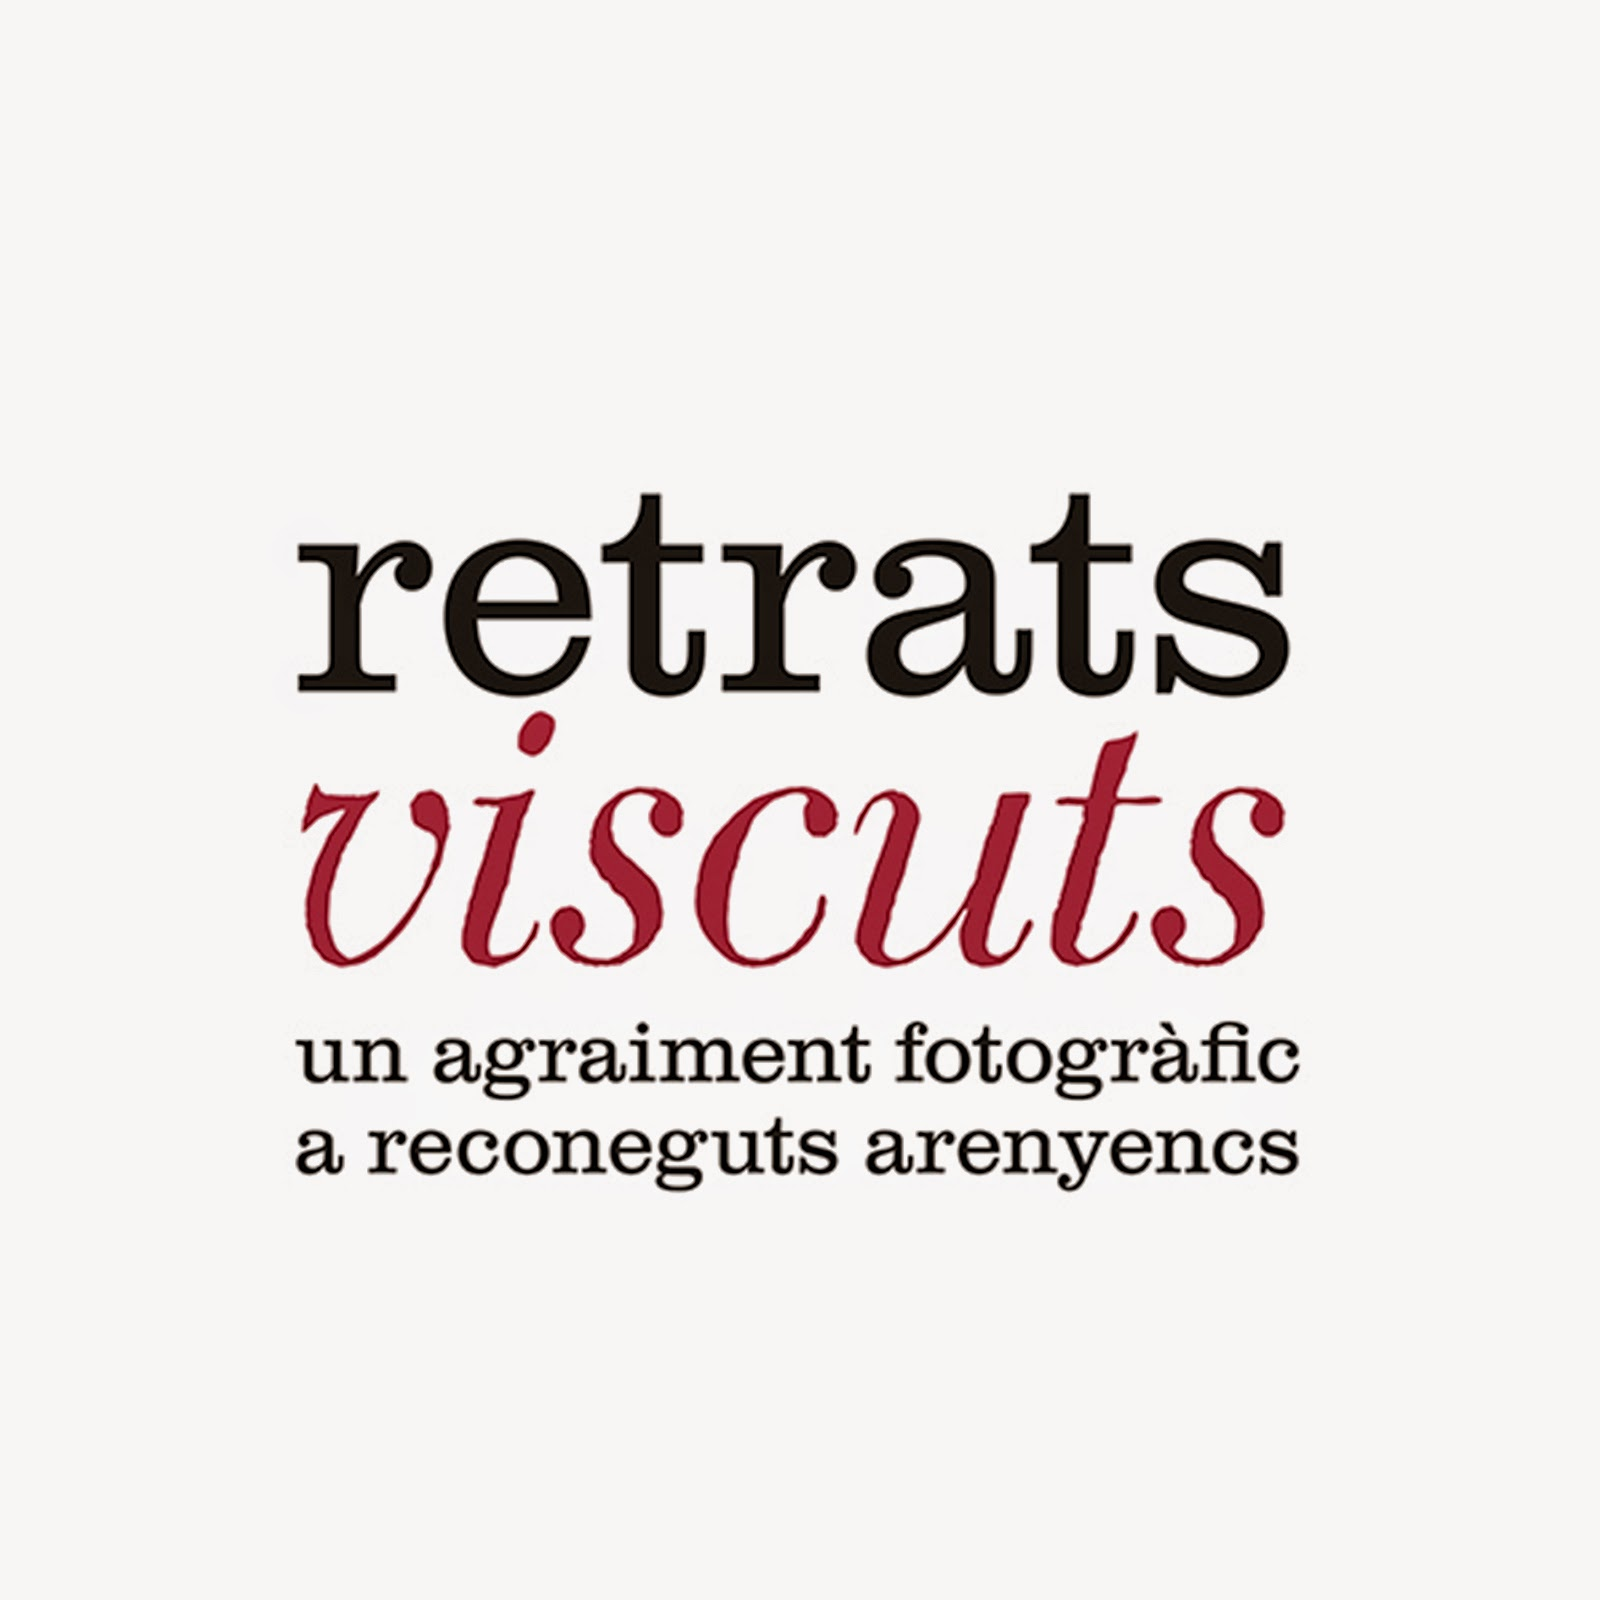 Retrats Viscuts